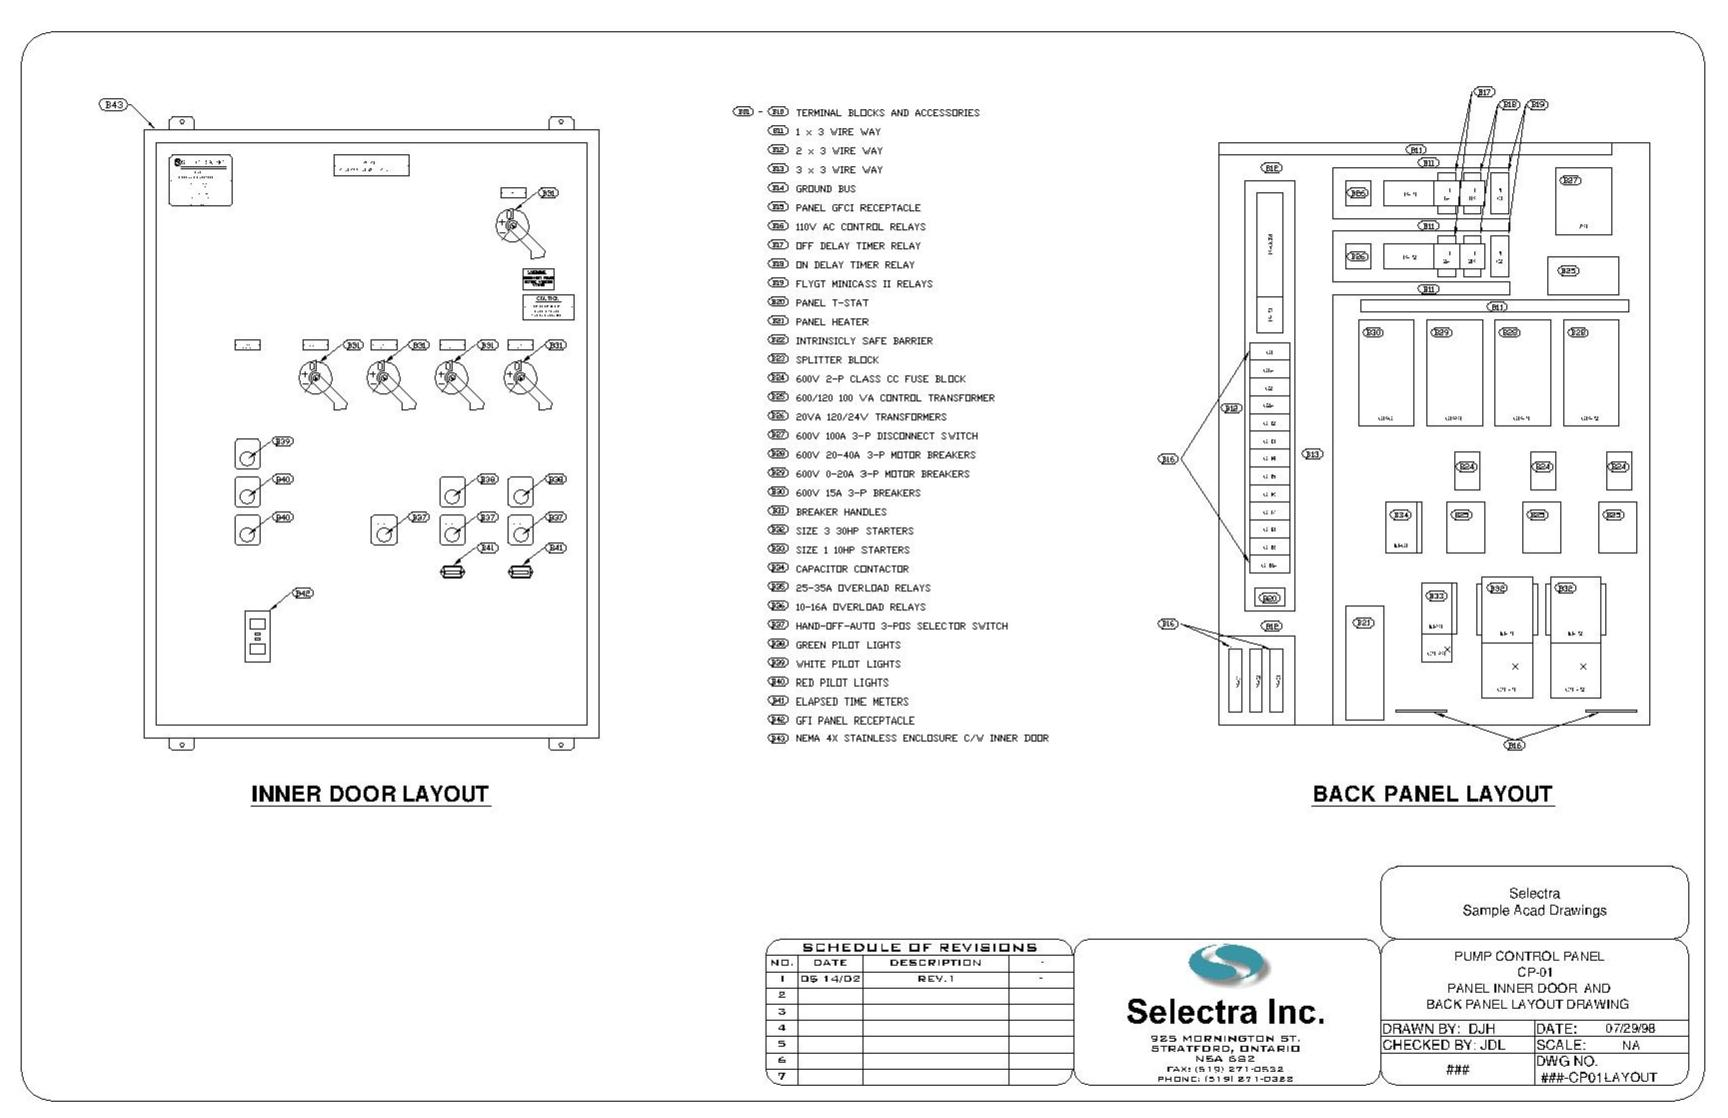 Reliance Electric Drives also Shunt Trip Circuit Breaker Wiring Diagram also Control Wiring Diagram For Single Phase Motor moreover Services in addition Lee electronic transformers 03 04. on three phase circuit breaker wiring diagram